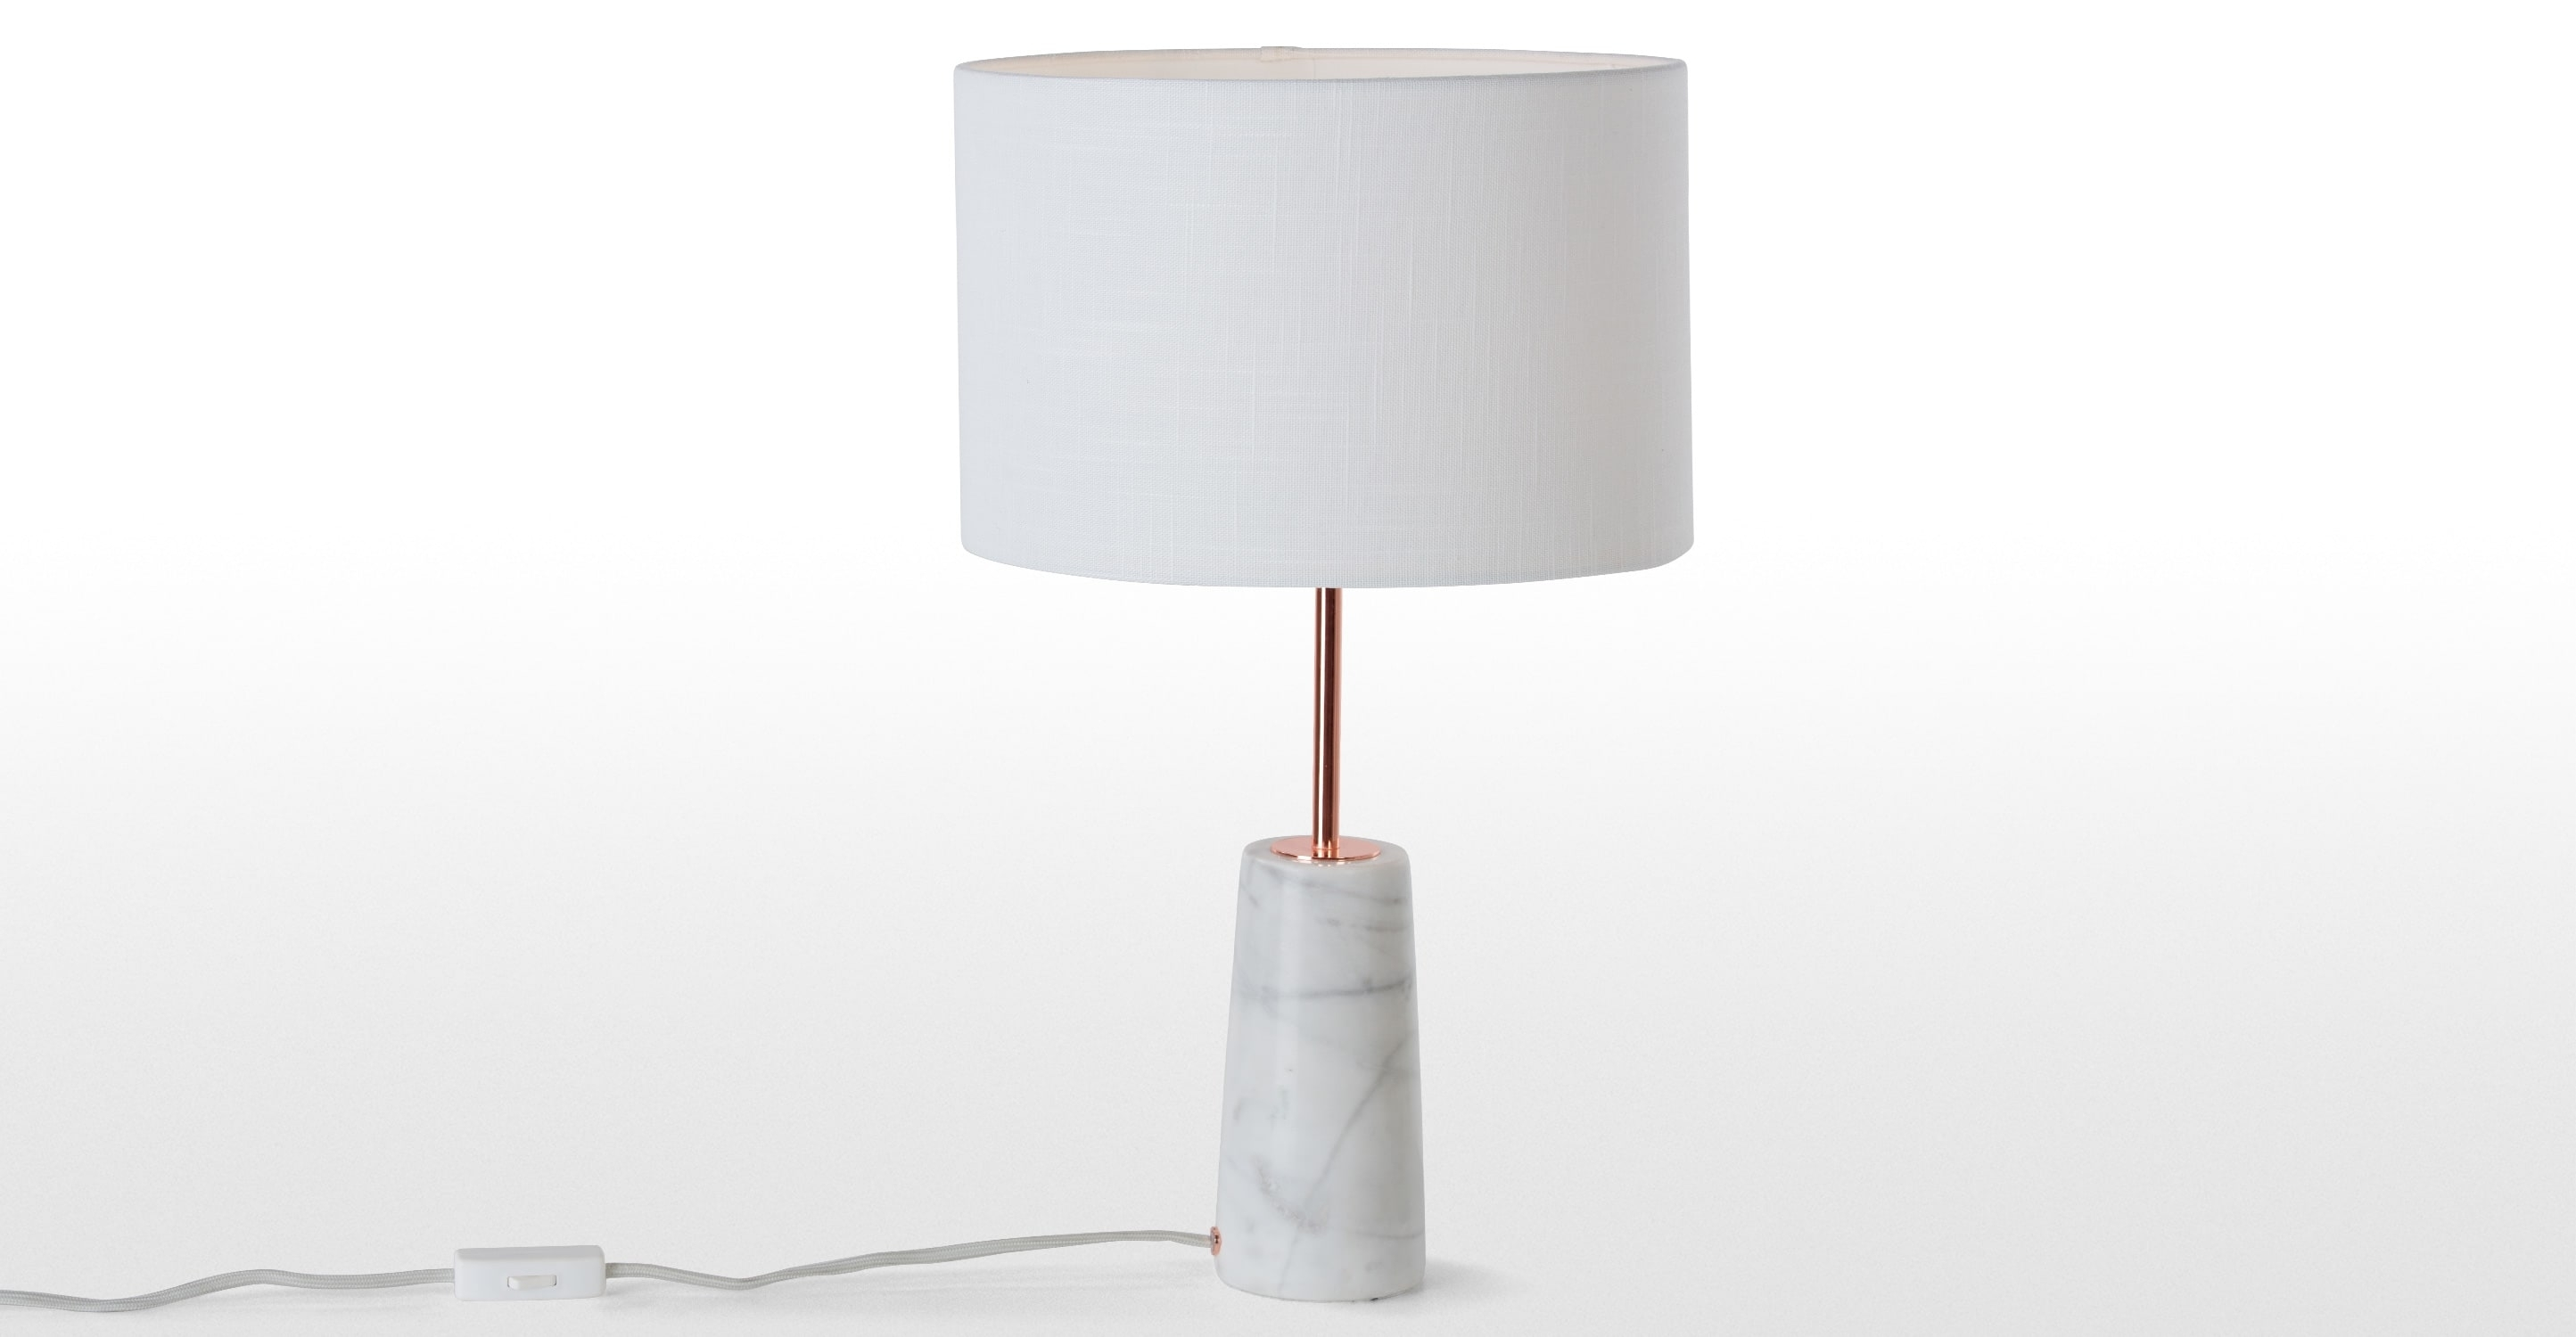 15 Photo Of Living Room Table Lamps At Target